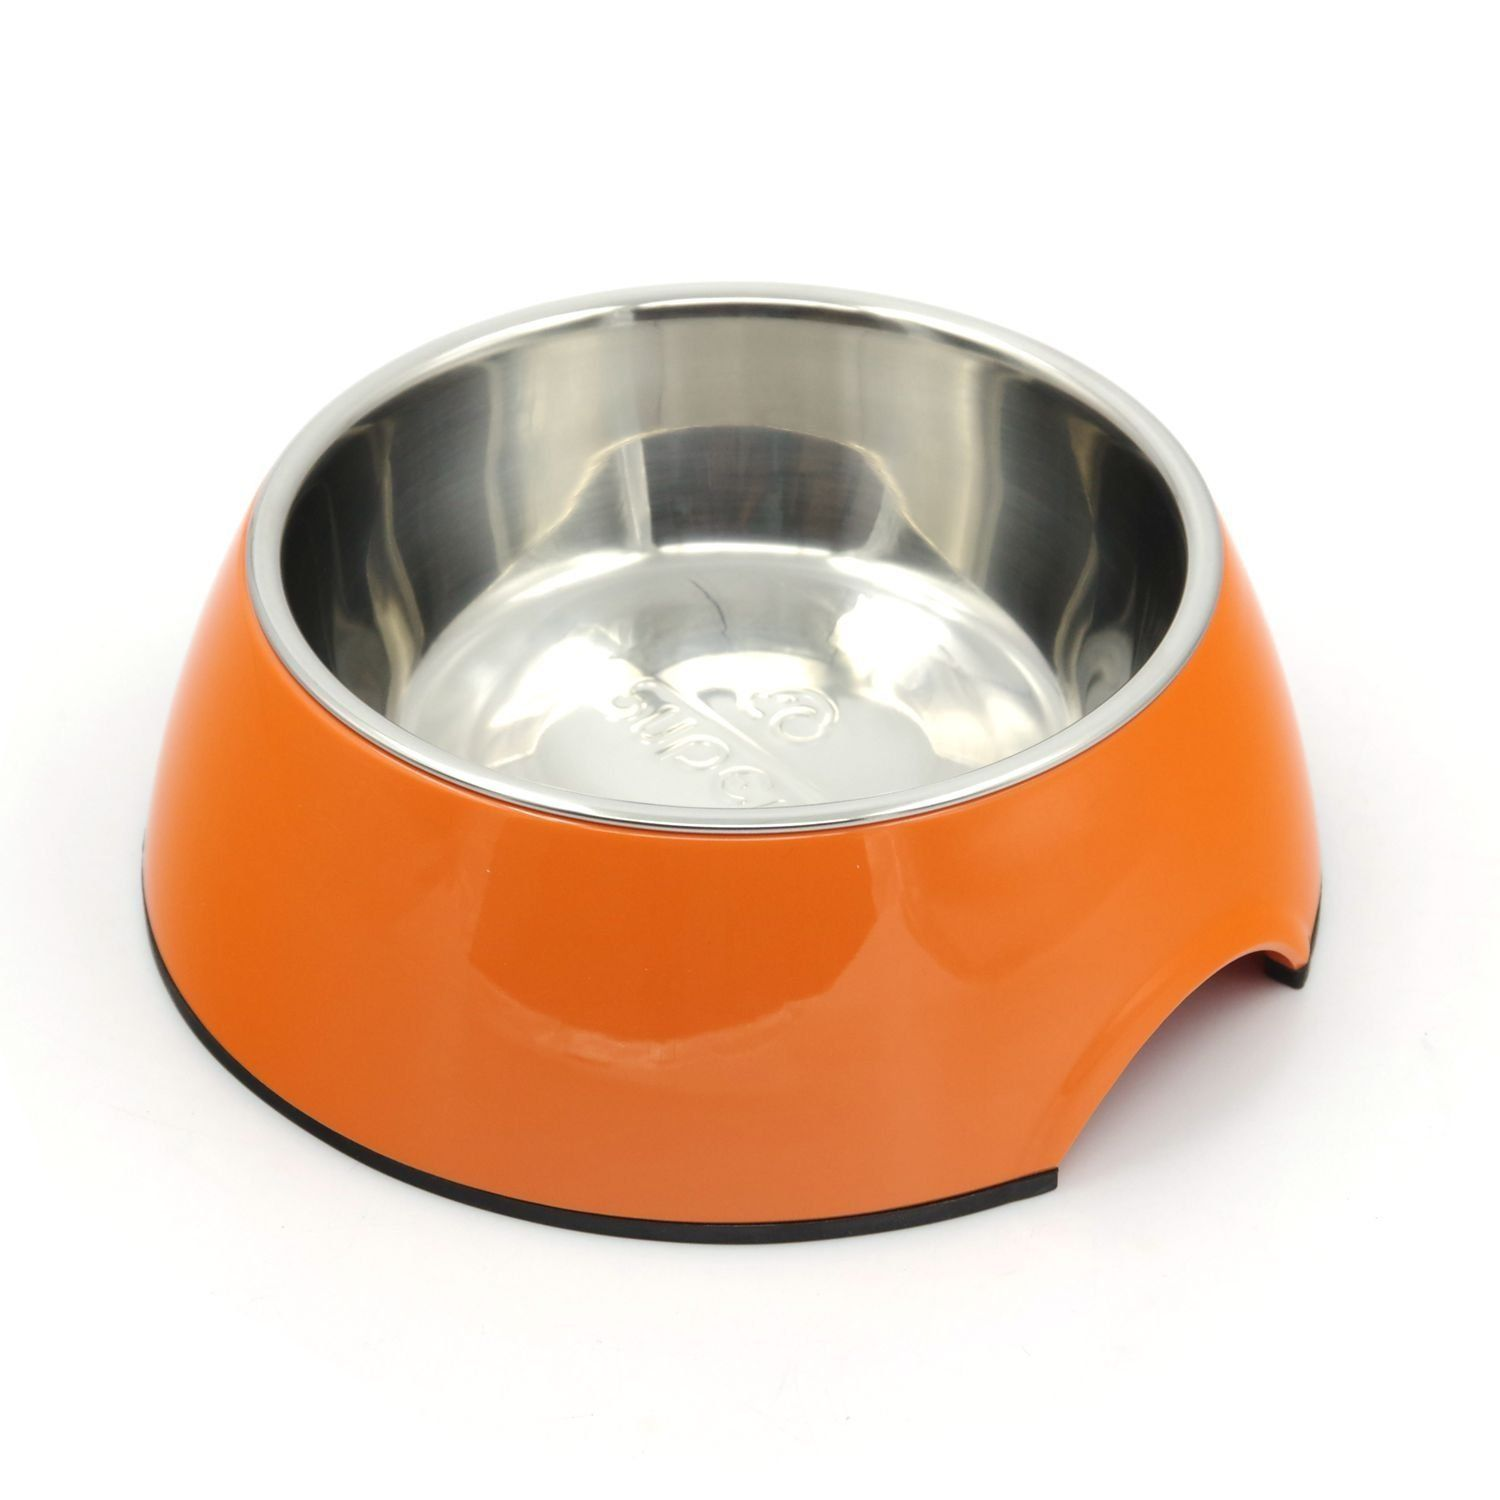 Uncategorized Dog Food And Water Bowl super design classic removable stainless steel pet food and water bowl in round melamine stand with